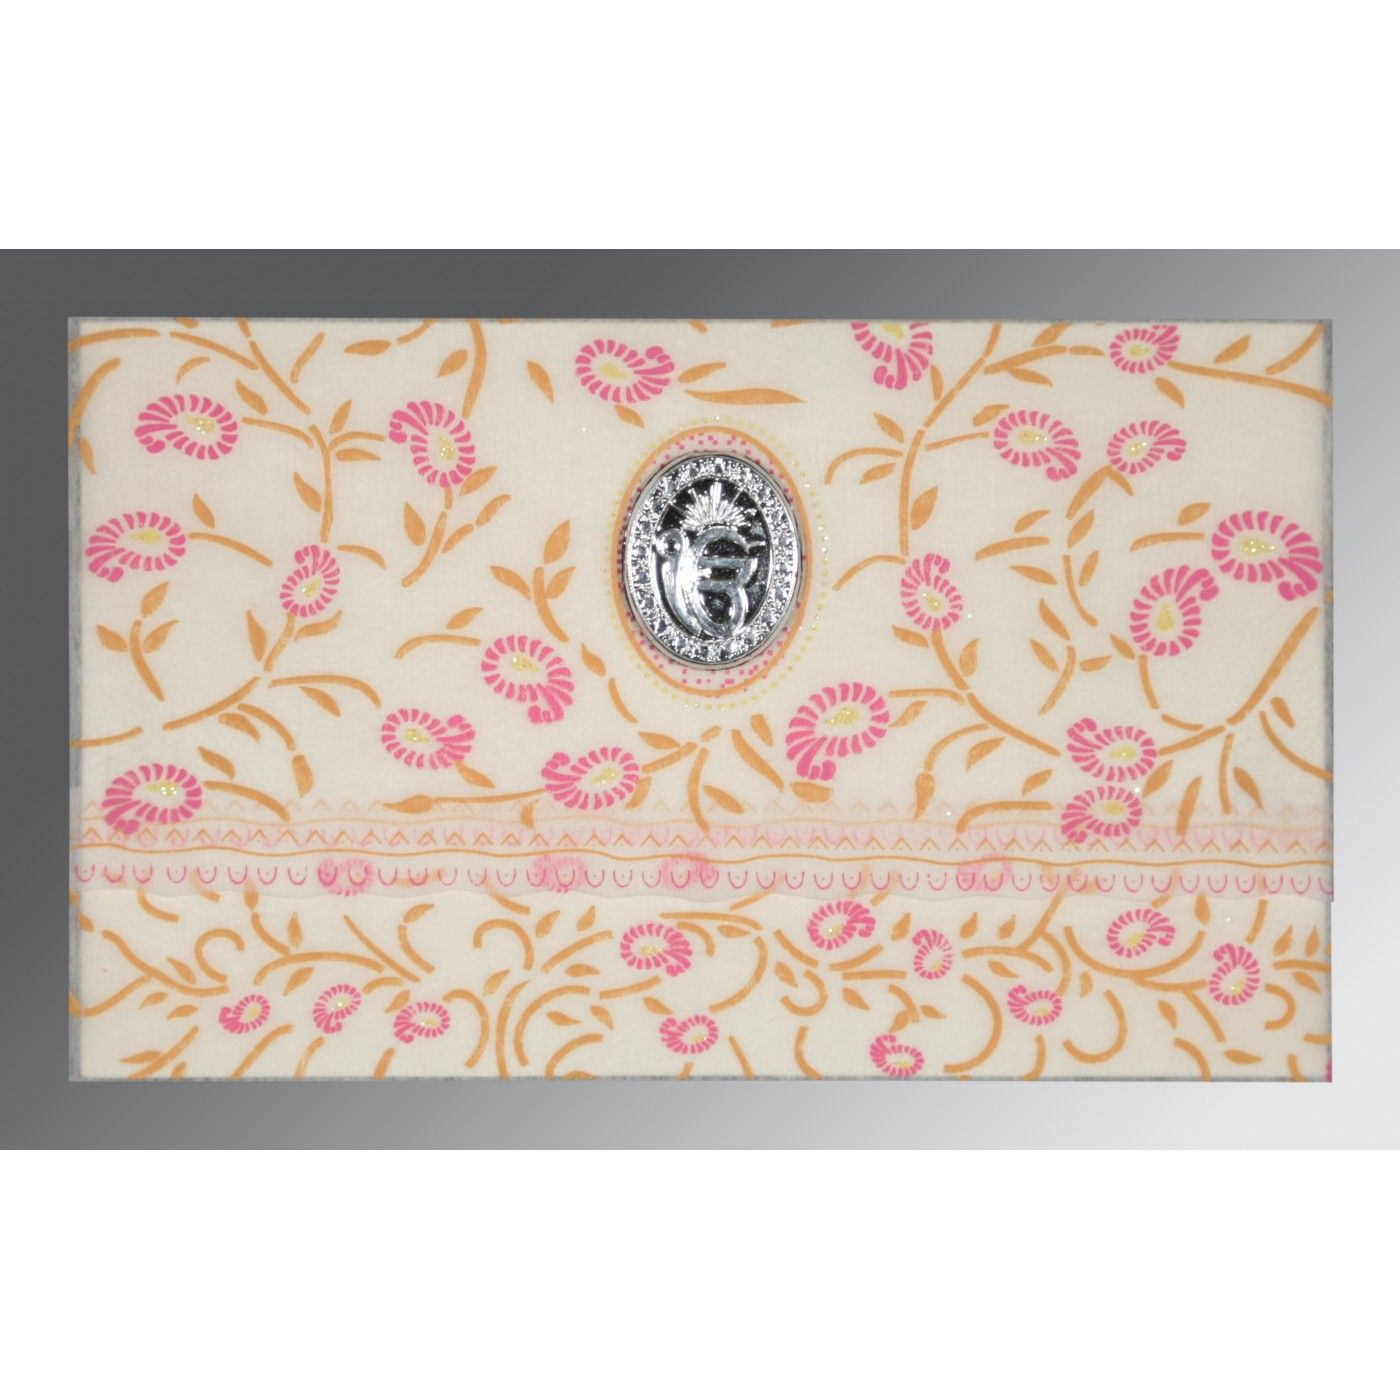 OFF-WHITE WOOLY FLORAL THEMED - GLITTER WEDDING CARD : CS-8206F - IndianWeddingCards